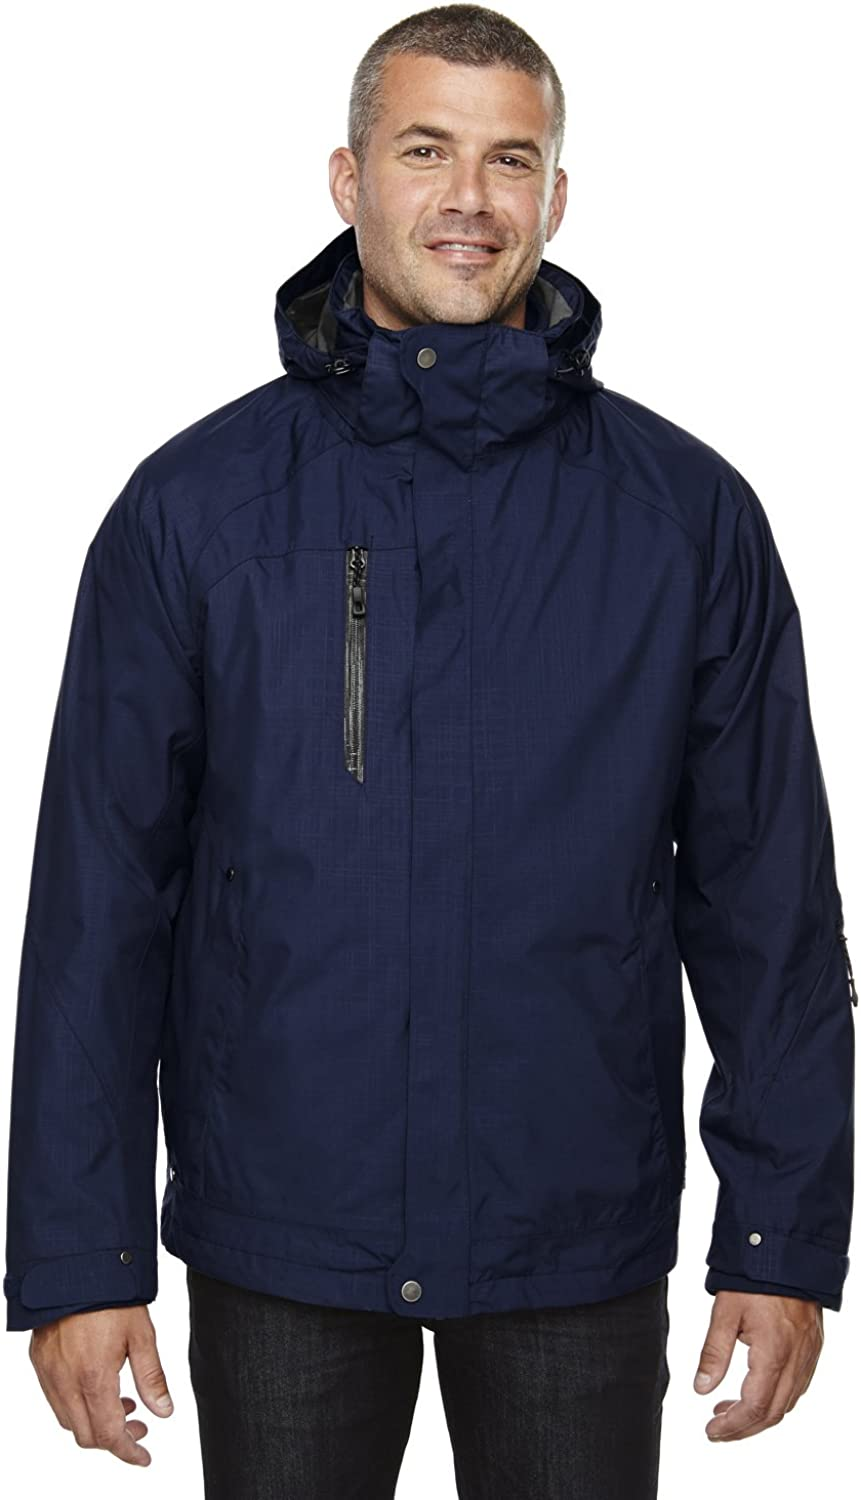 North End Mens 3-in-1 Jacket with Soft Shell Liner (88178)